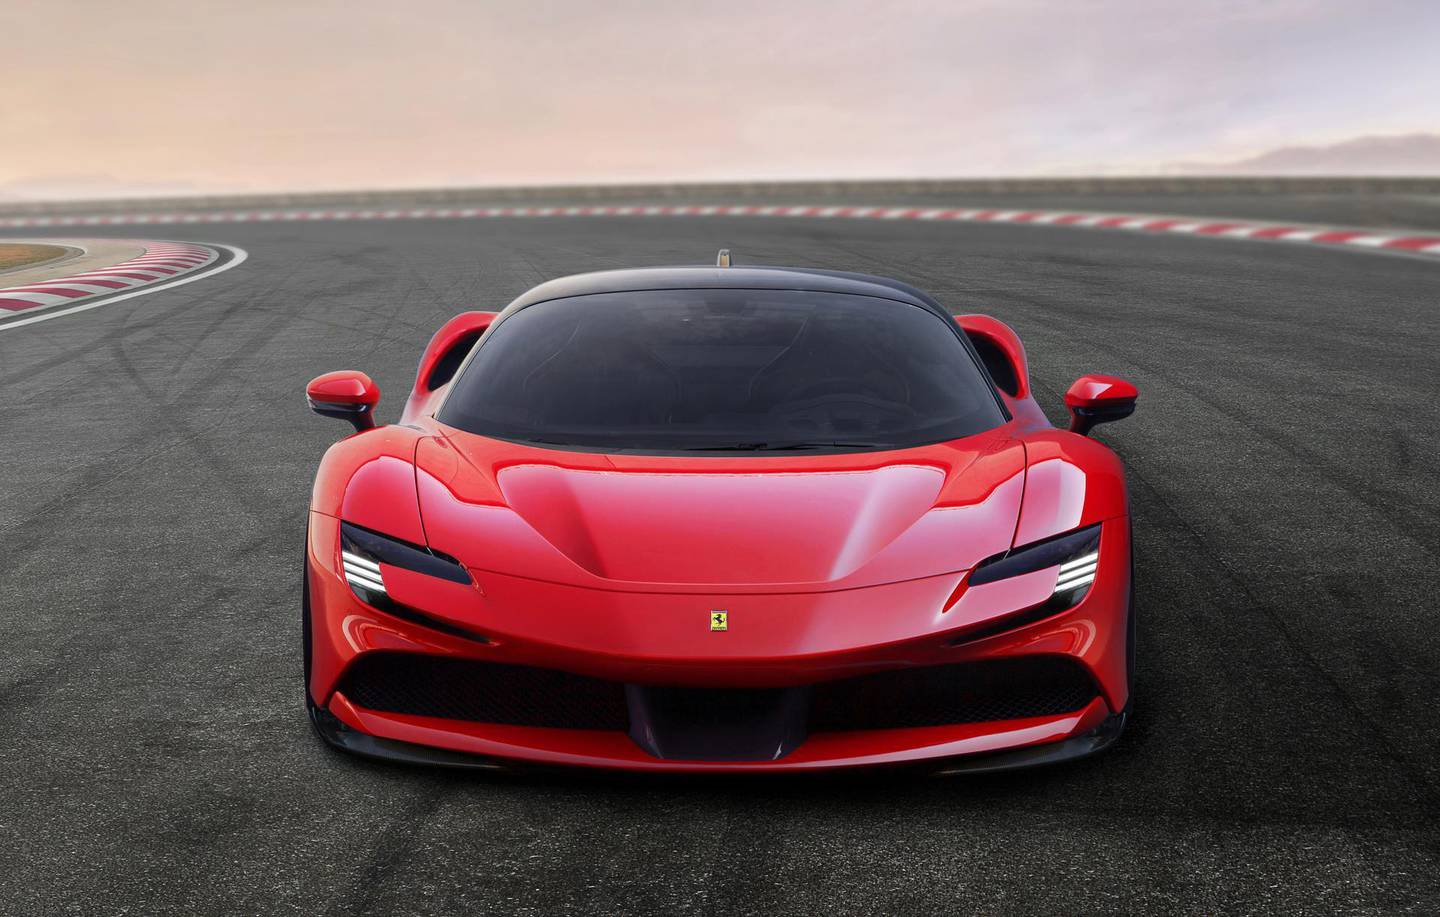 Ferrari SF90 Stradale hybrid sports car is displayed at the company's base in Maranello, Italy May 29, 2019. Ferrari/Handout via REUTERS ATTENTION EDITORS - THIS PICTURE WAS PROVIDED BY A THIRD PARTY.